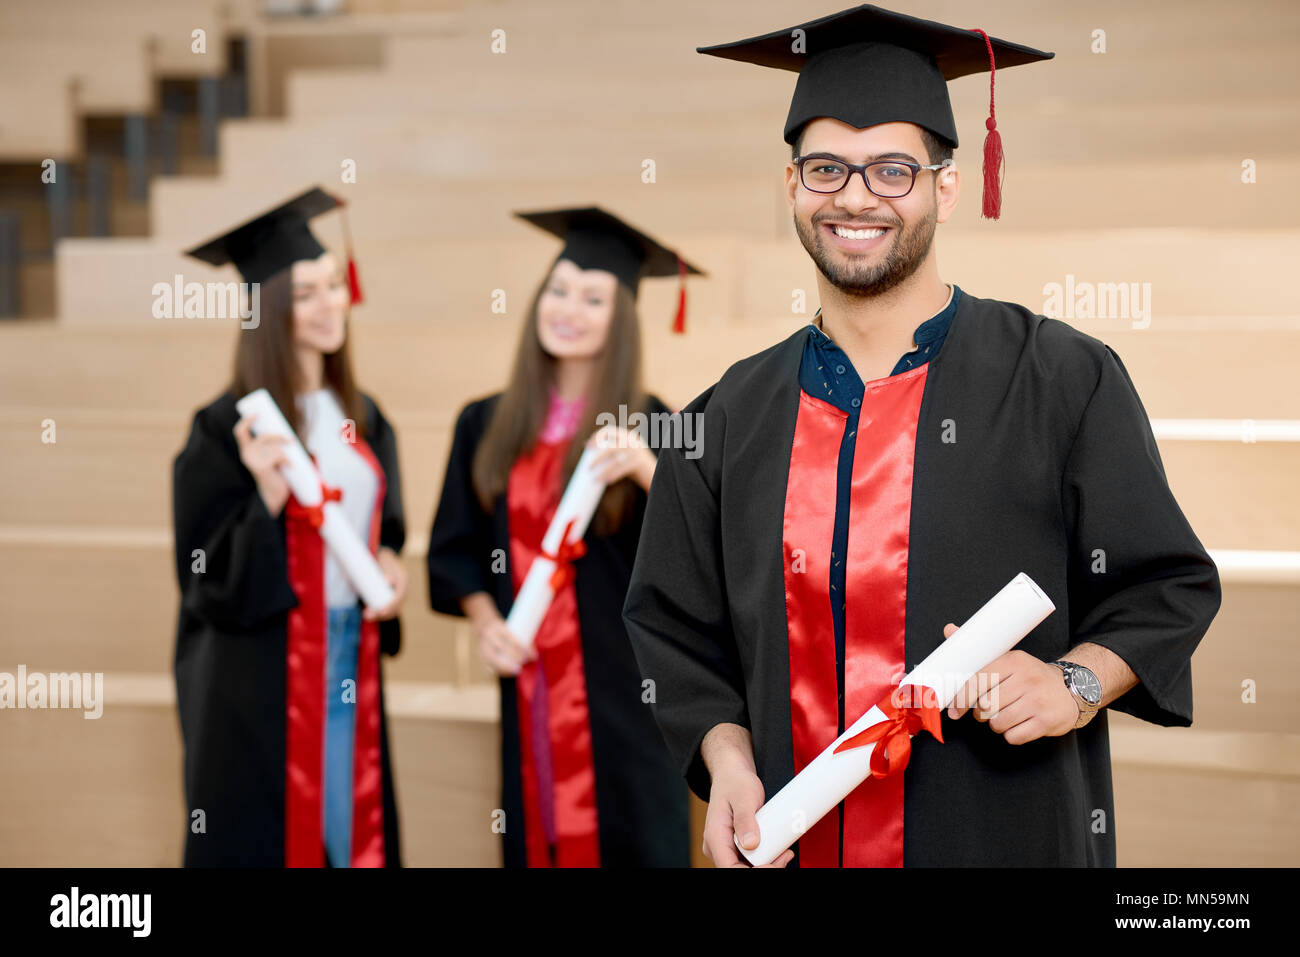 Happy smiling boy keeping university diploma. Graduate standing near young groupmates and looking satisfied. Students wearing black and red colored graduation gowns. Ending university. Stock Photo